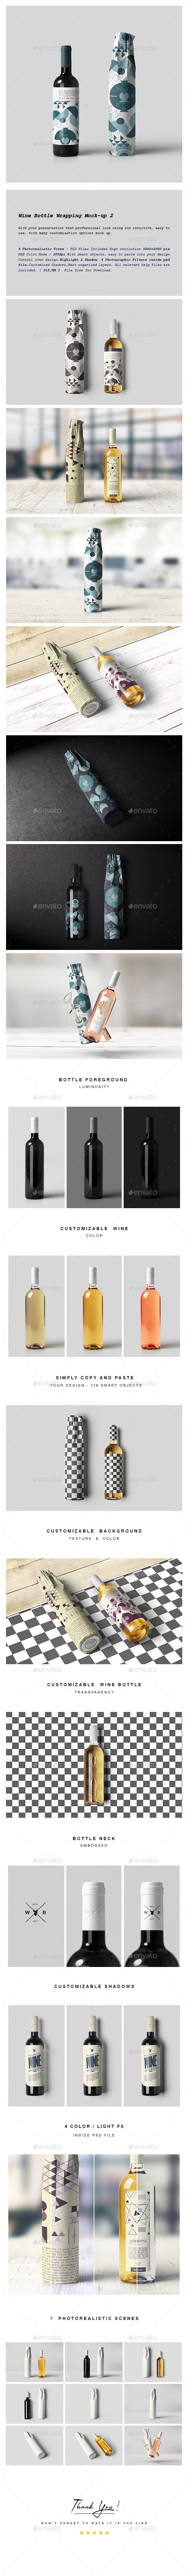 GraphicRiver Wine Bottle Wrapping Mock-up 2 20824978